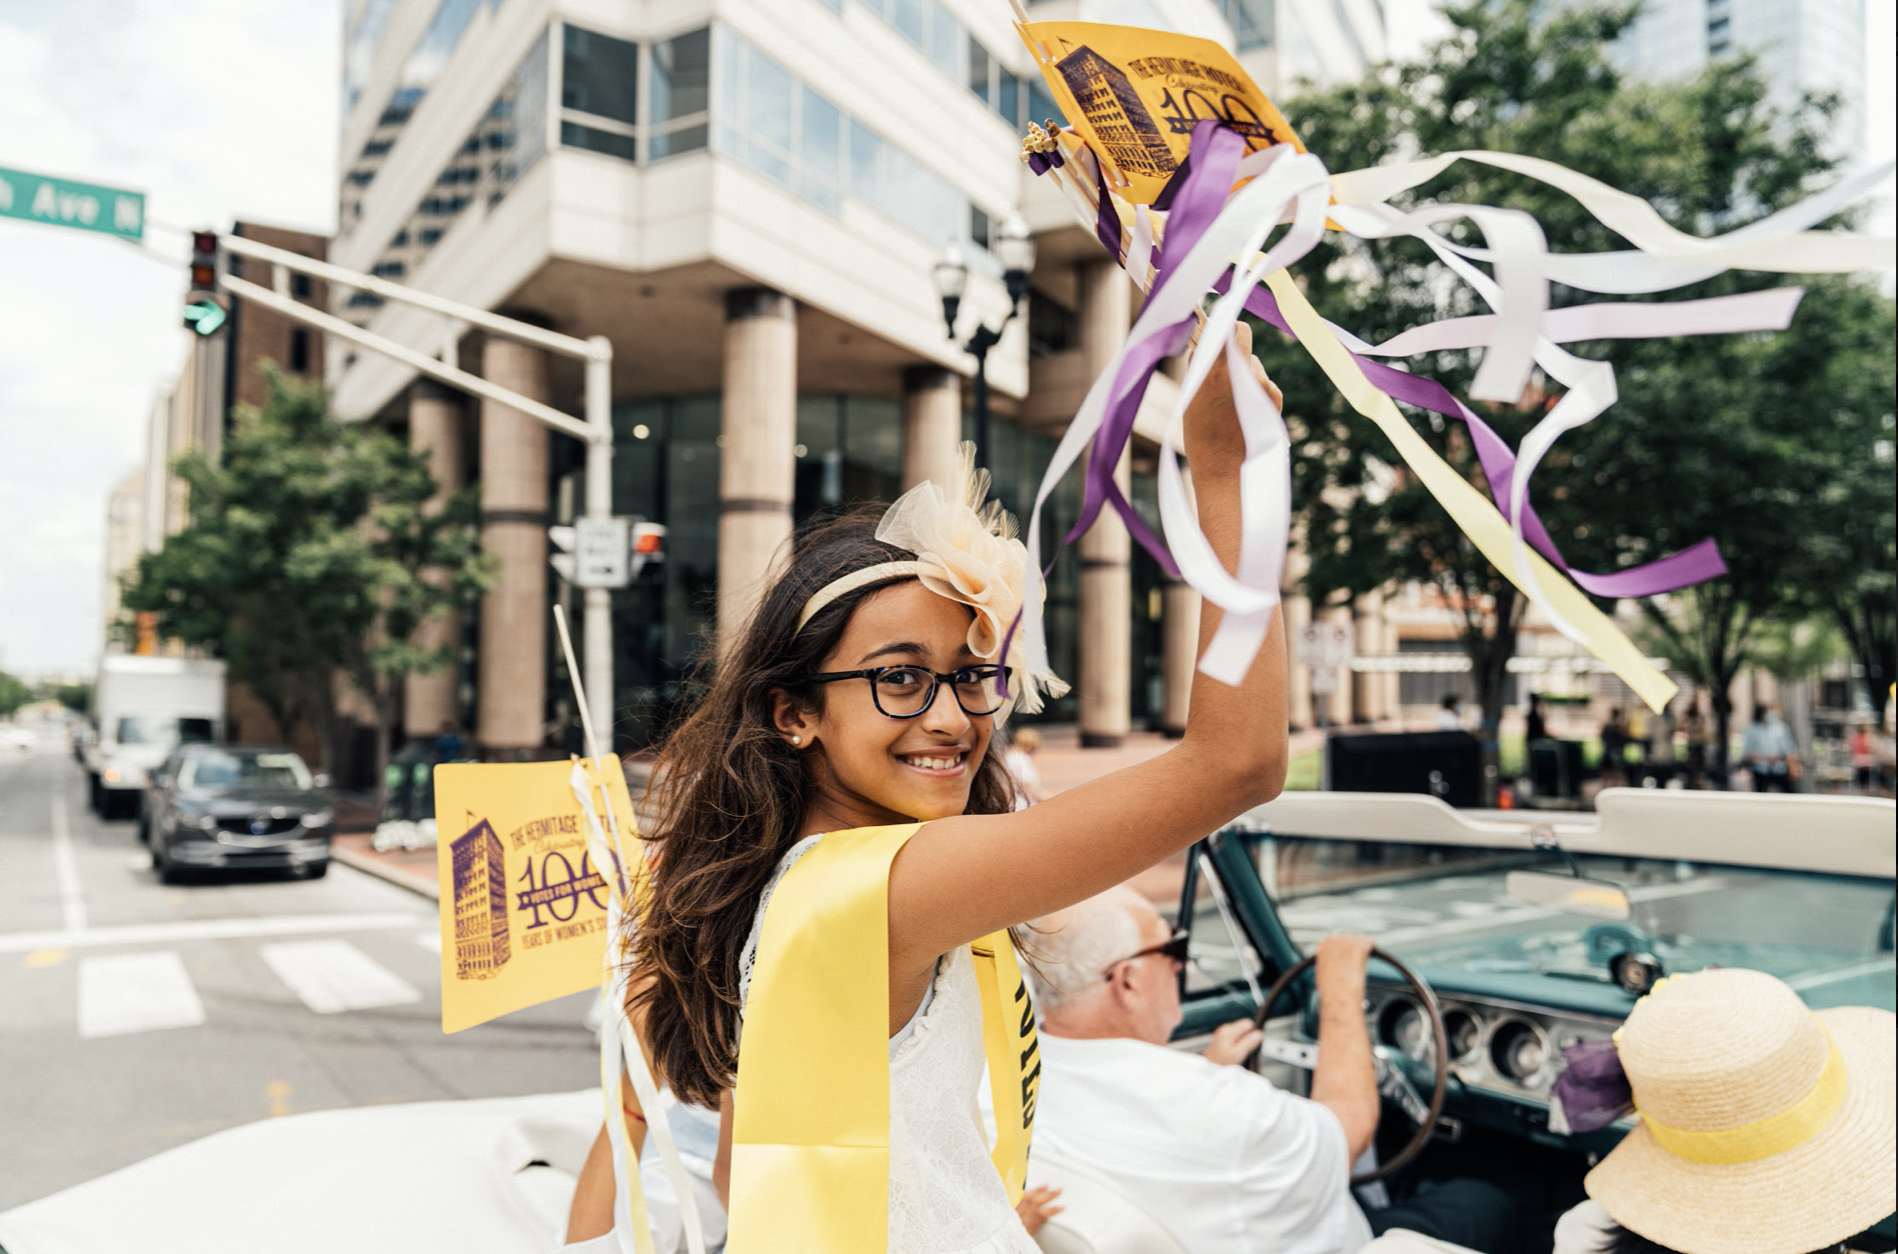 Nashville, Tenn., Aug. 18 - A future voter attends the celebration of the 100th anniversary of the ratification of the 19th Amendment. (Photo: Alex Kent)